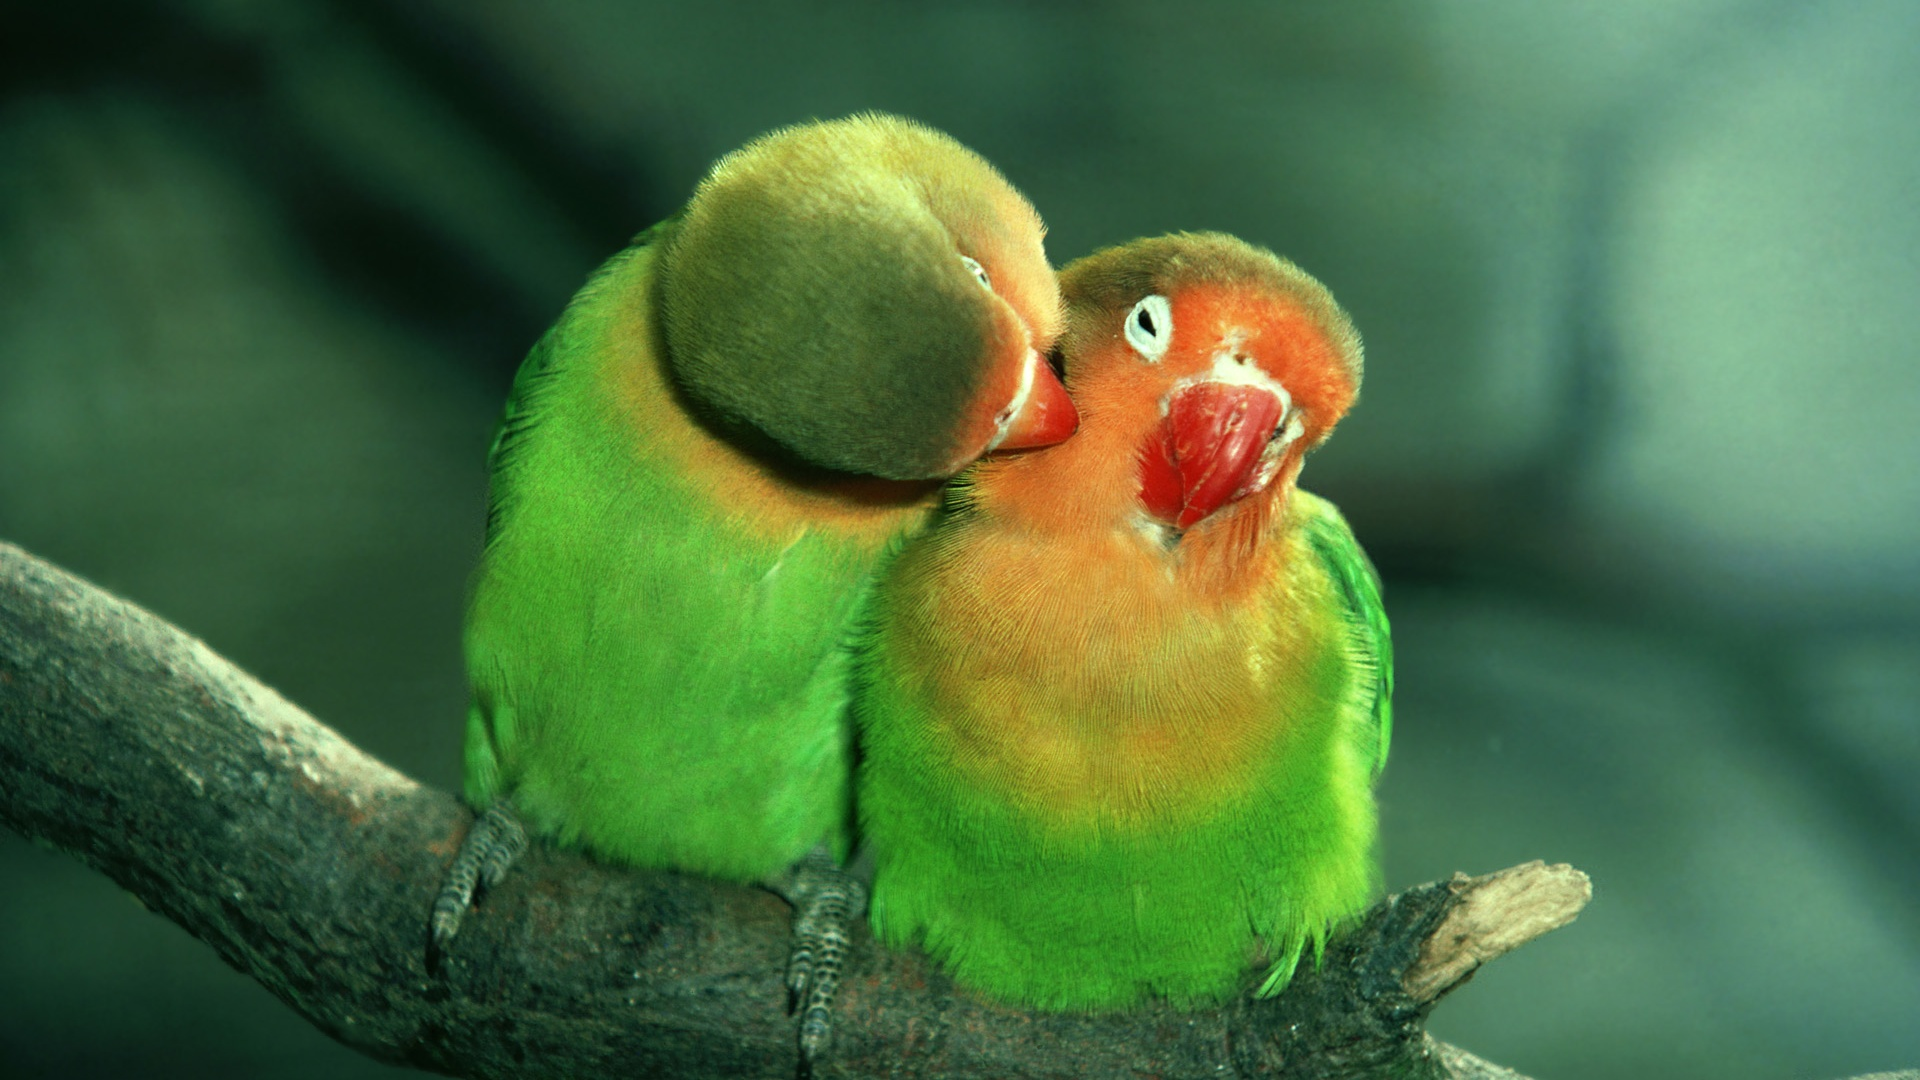 Expression-of-the-intimate-parrot-birds_1920x1080